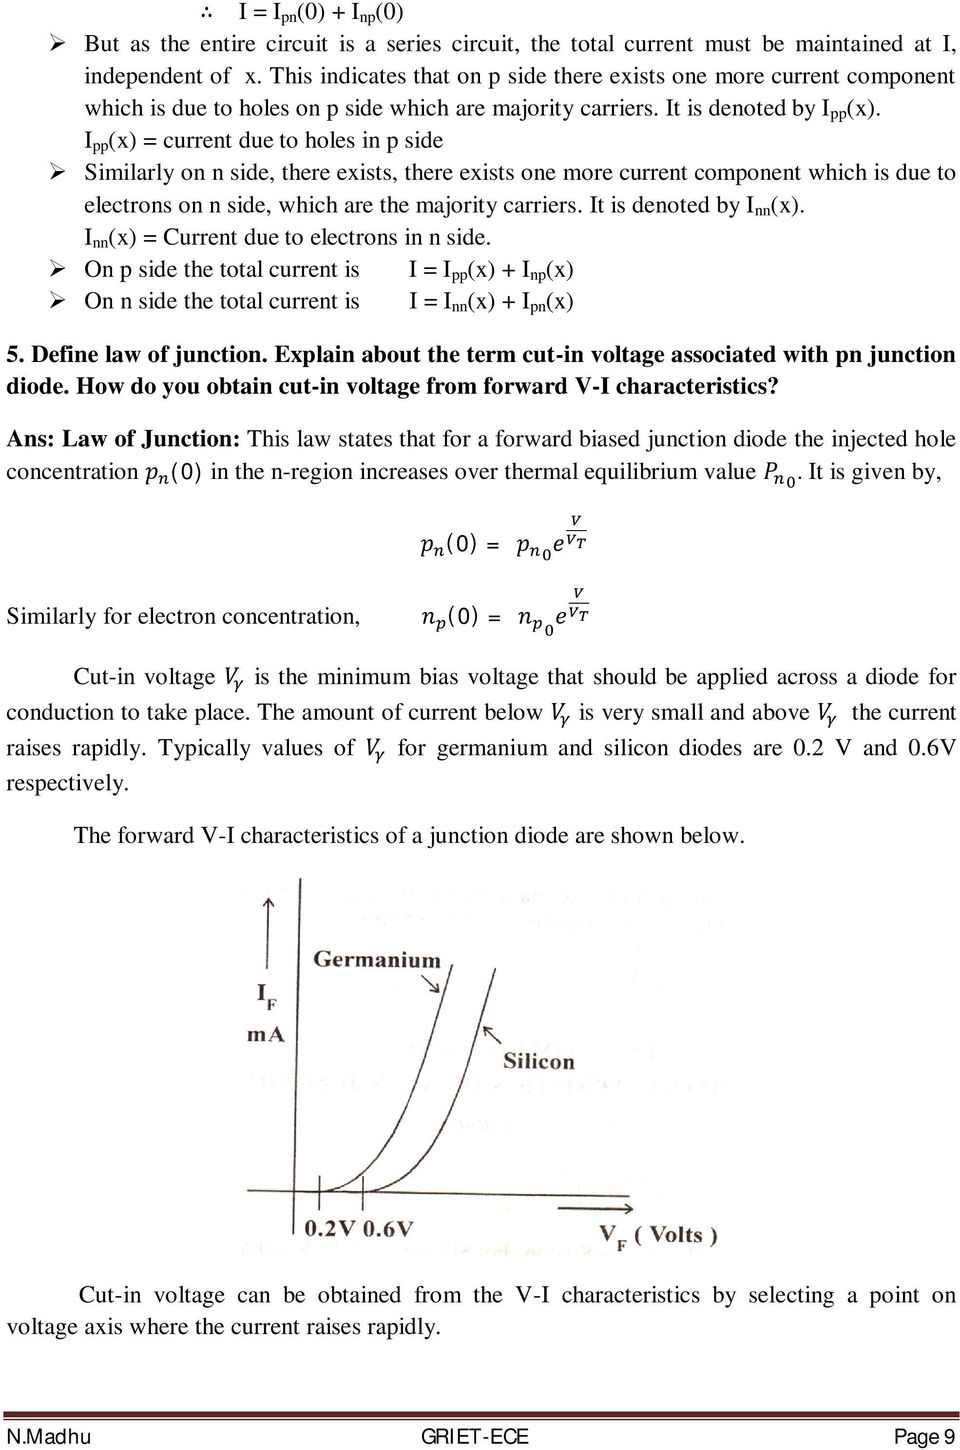 Basic Electrical And Electronics Engineering Pdf Pn Junction Diode Its Characteristics I Pp X Current Due To Holes In P Side Similarly On N 6 Explain The Volt Ampere Of